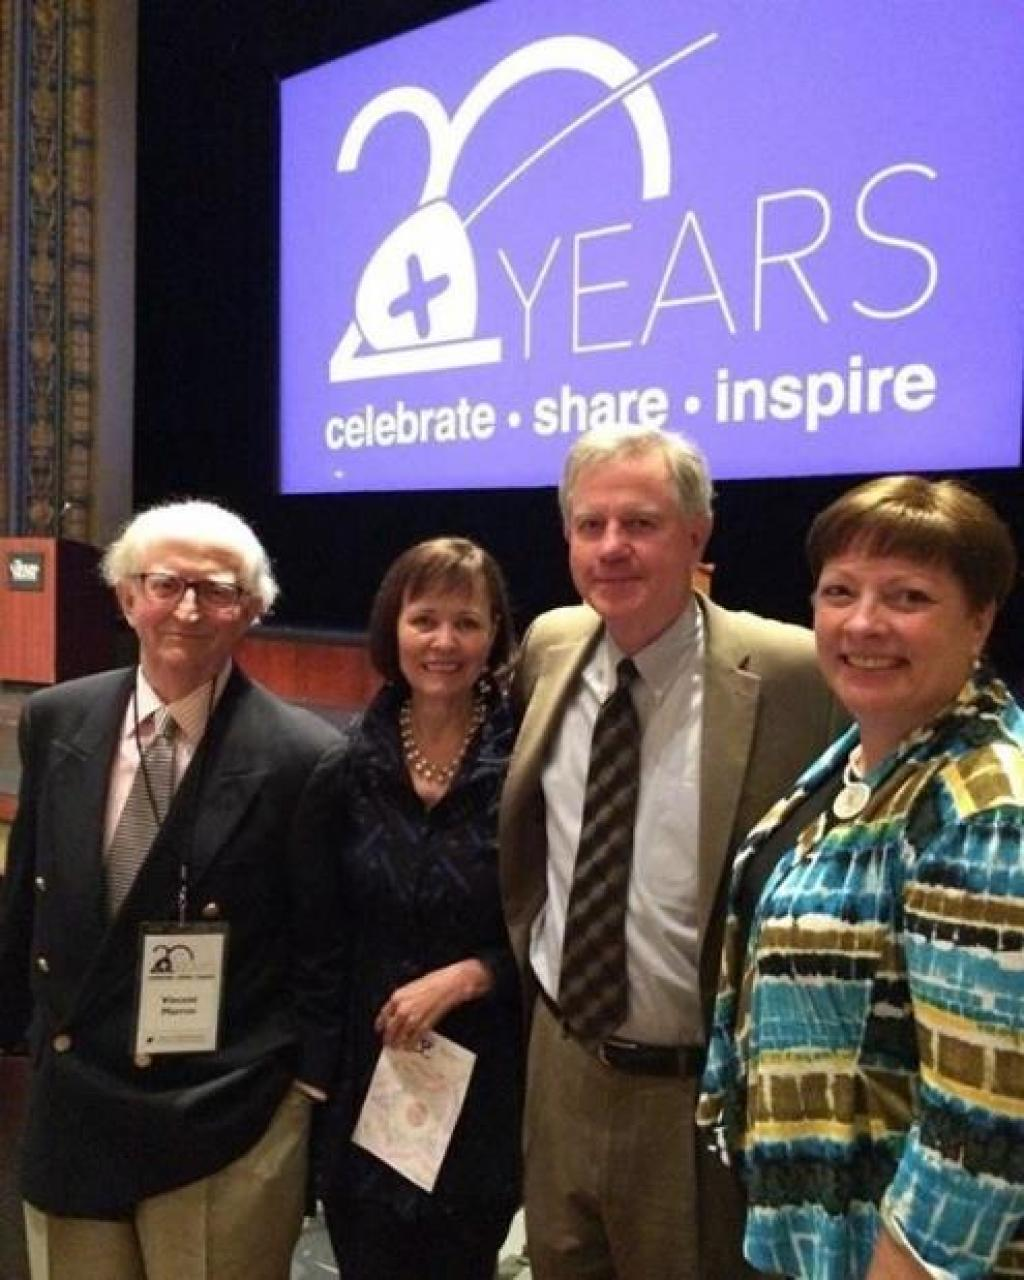 Vincent Marron, Jean Hendrickson, Wayne Martin, and Michelle Burrows celebrate the 20th anniversary of A+ Schools.